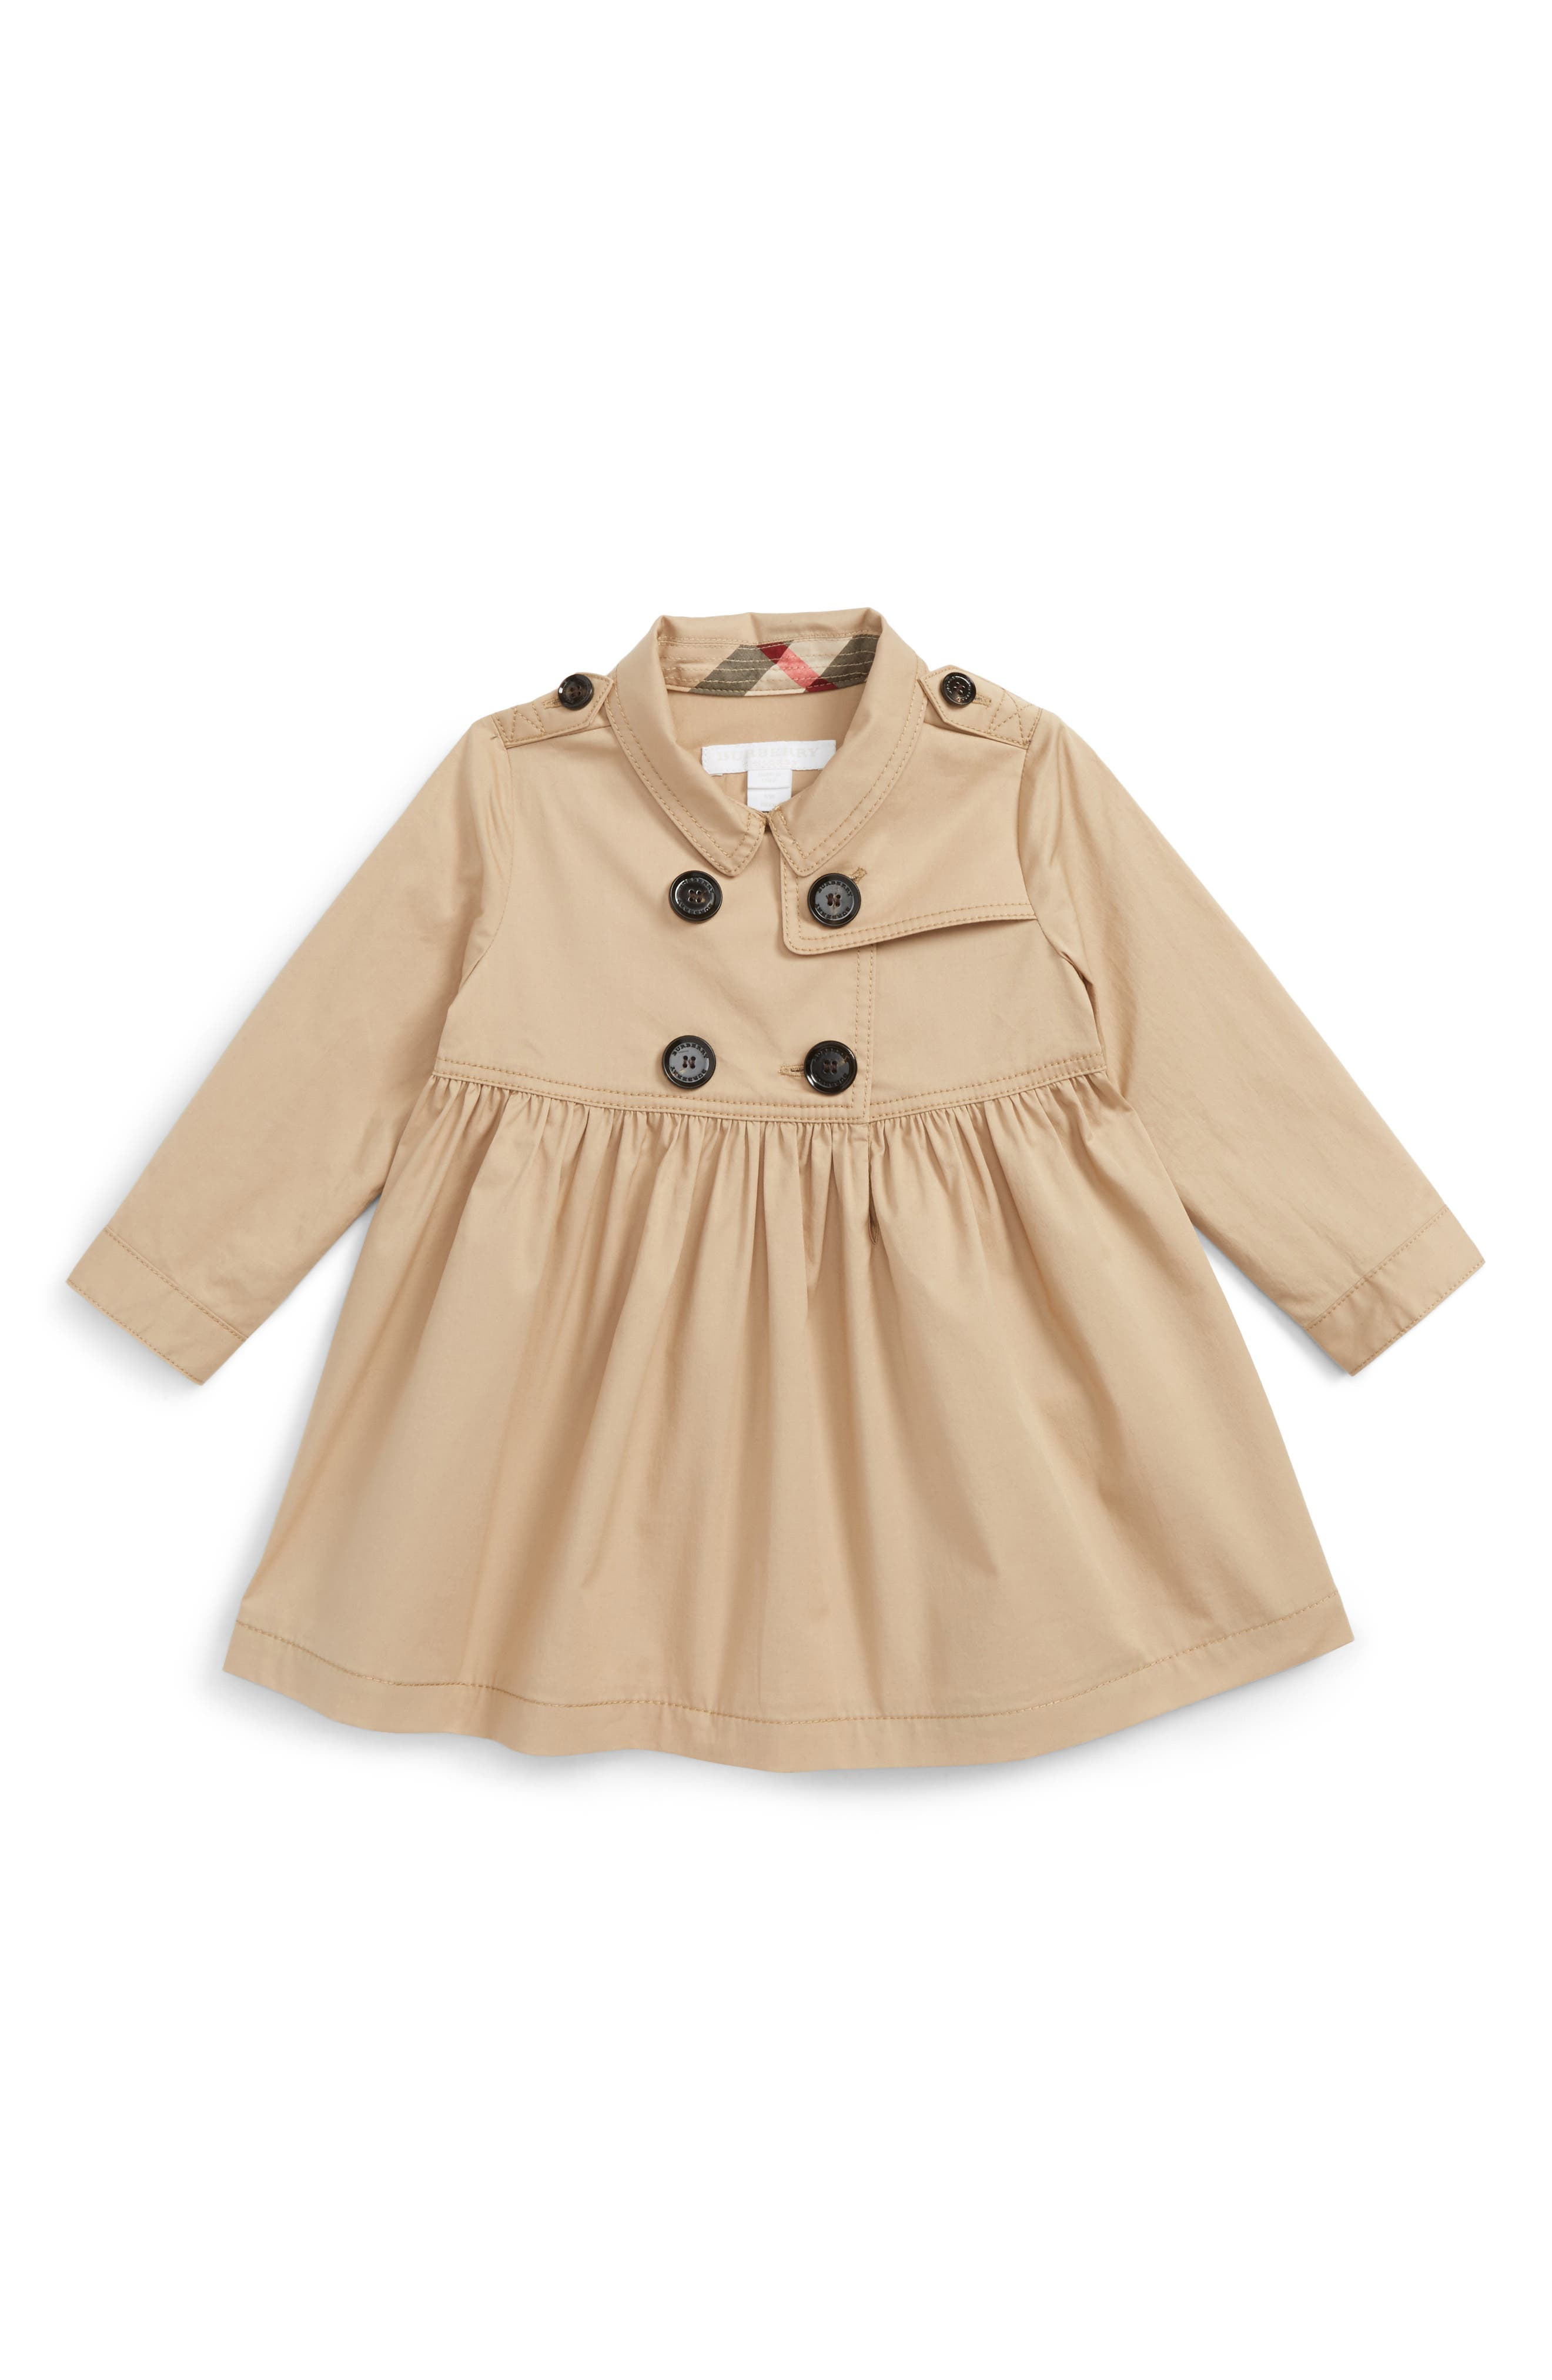 Alternate Image 1 Selected - Burberry Lillybeth Dress (Baby Girls)